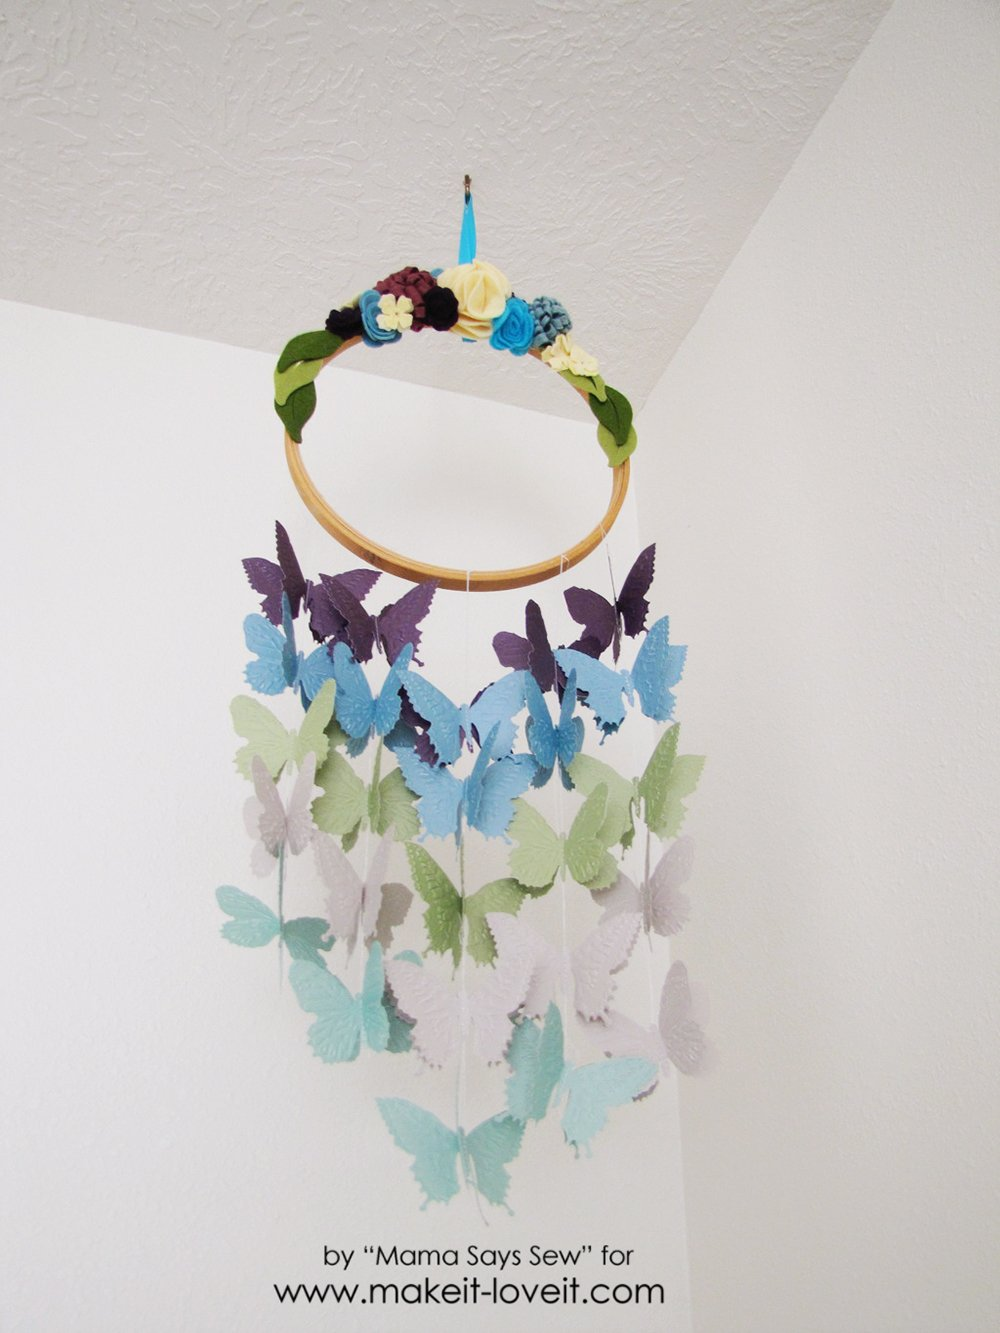 Make your own butterfly mobile or dreamcatcher (16)